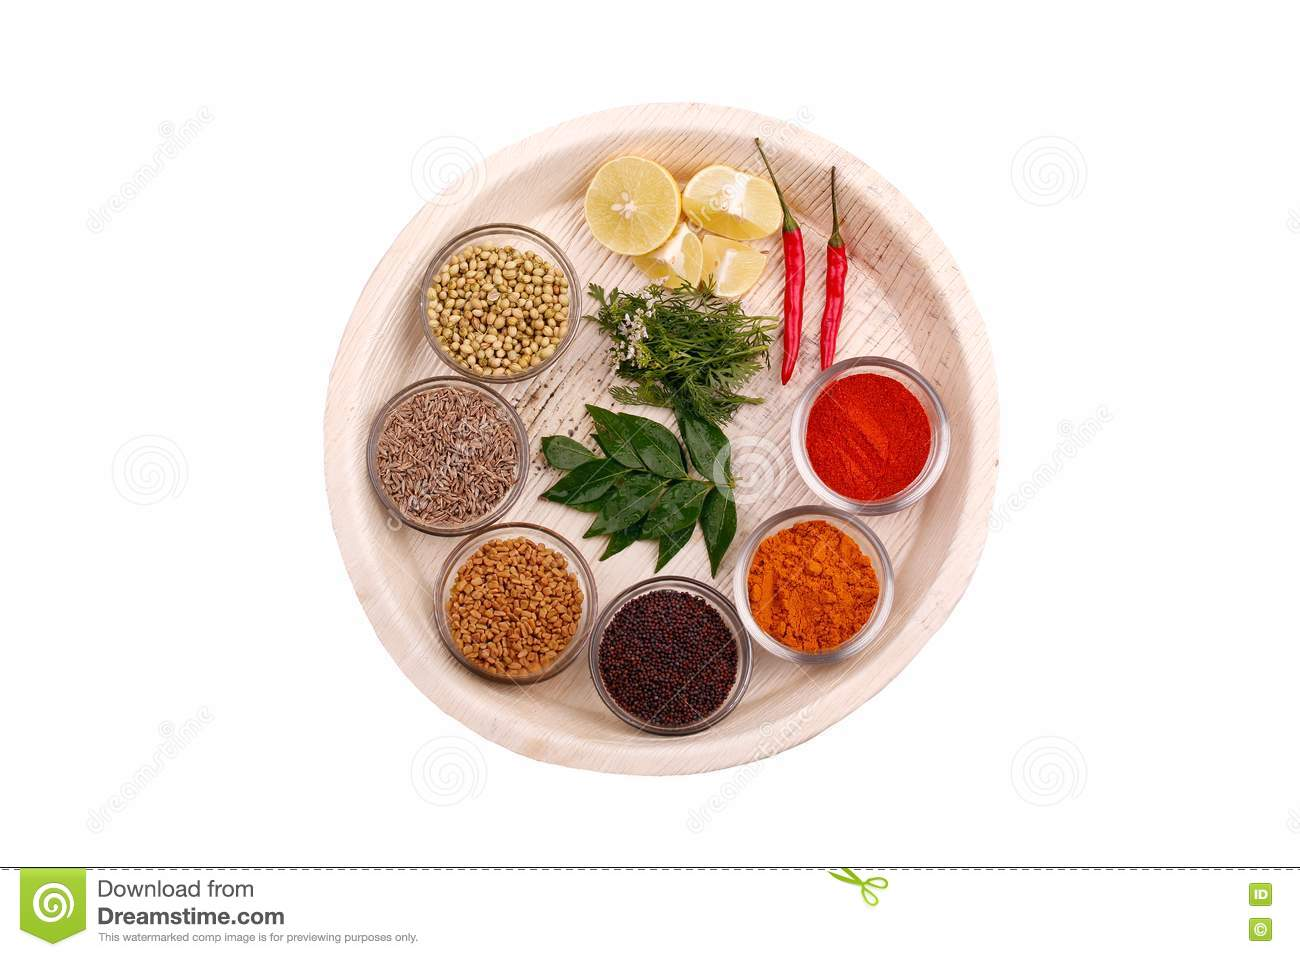 How to Open a Spice & Condiment Shop